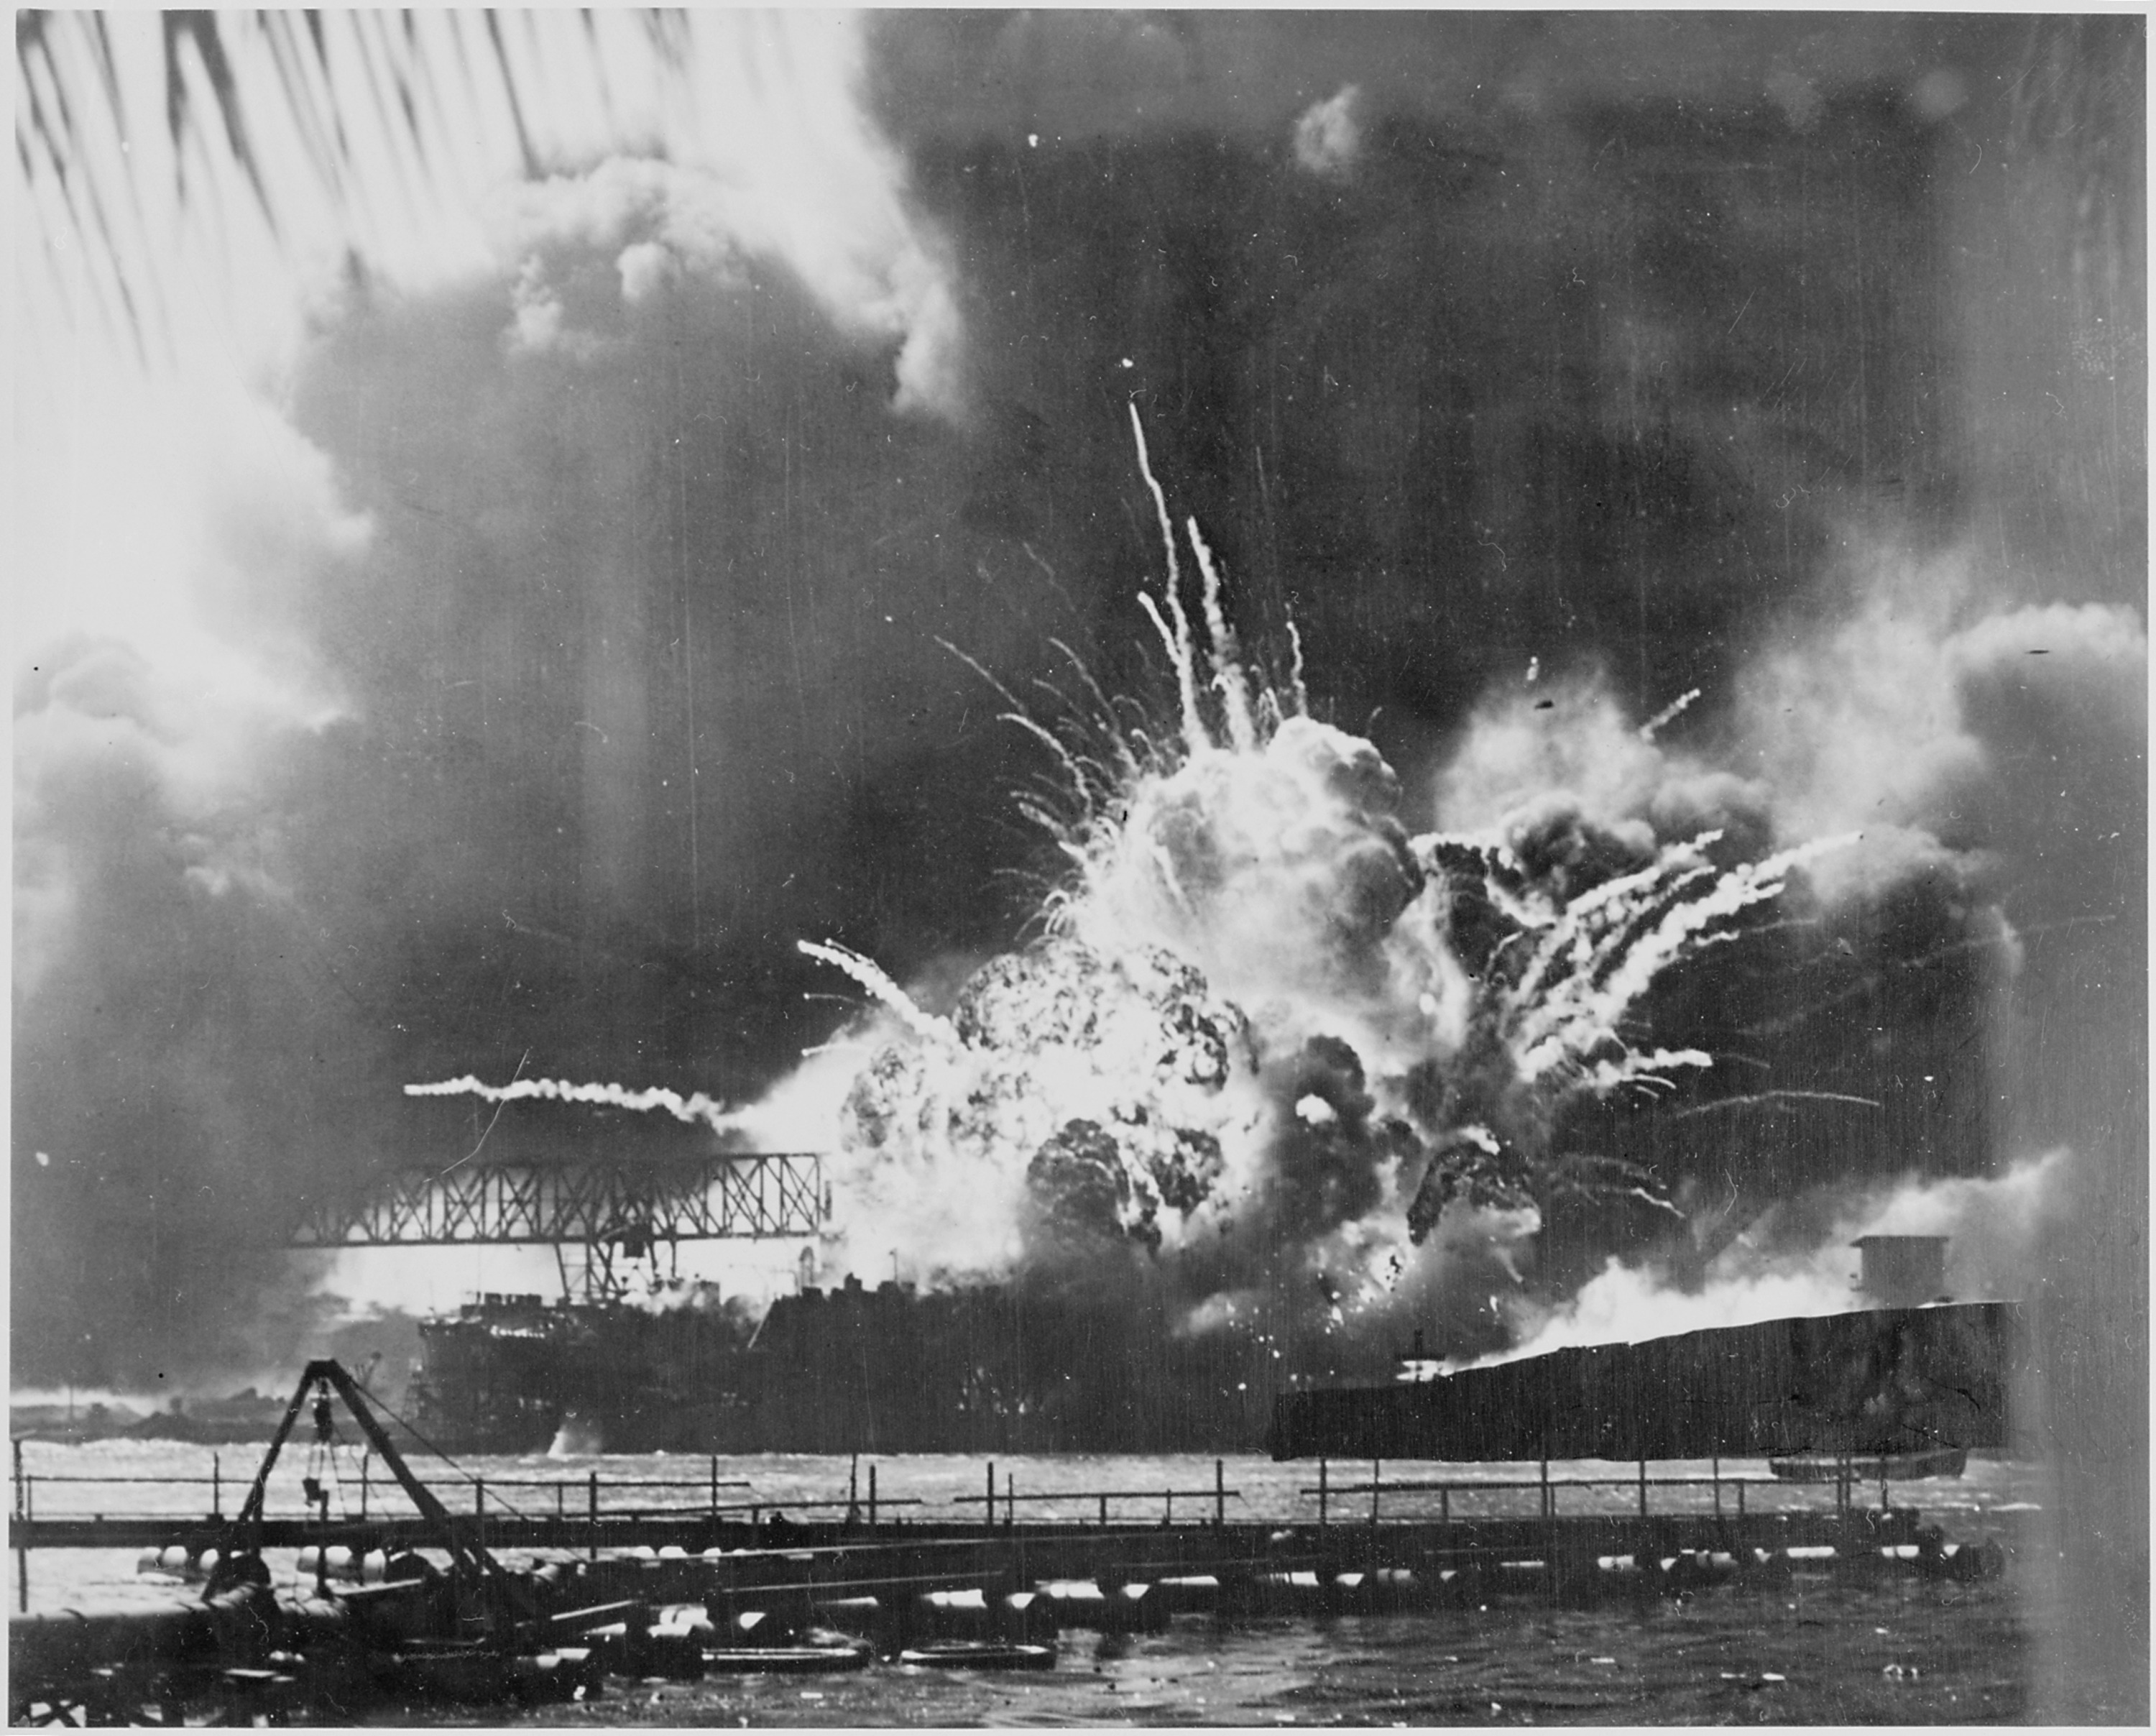 Attack on pearl harbor date